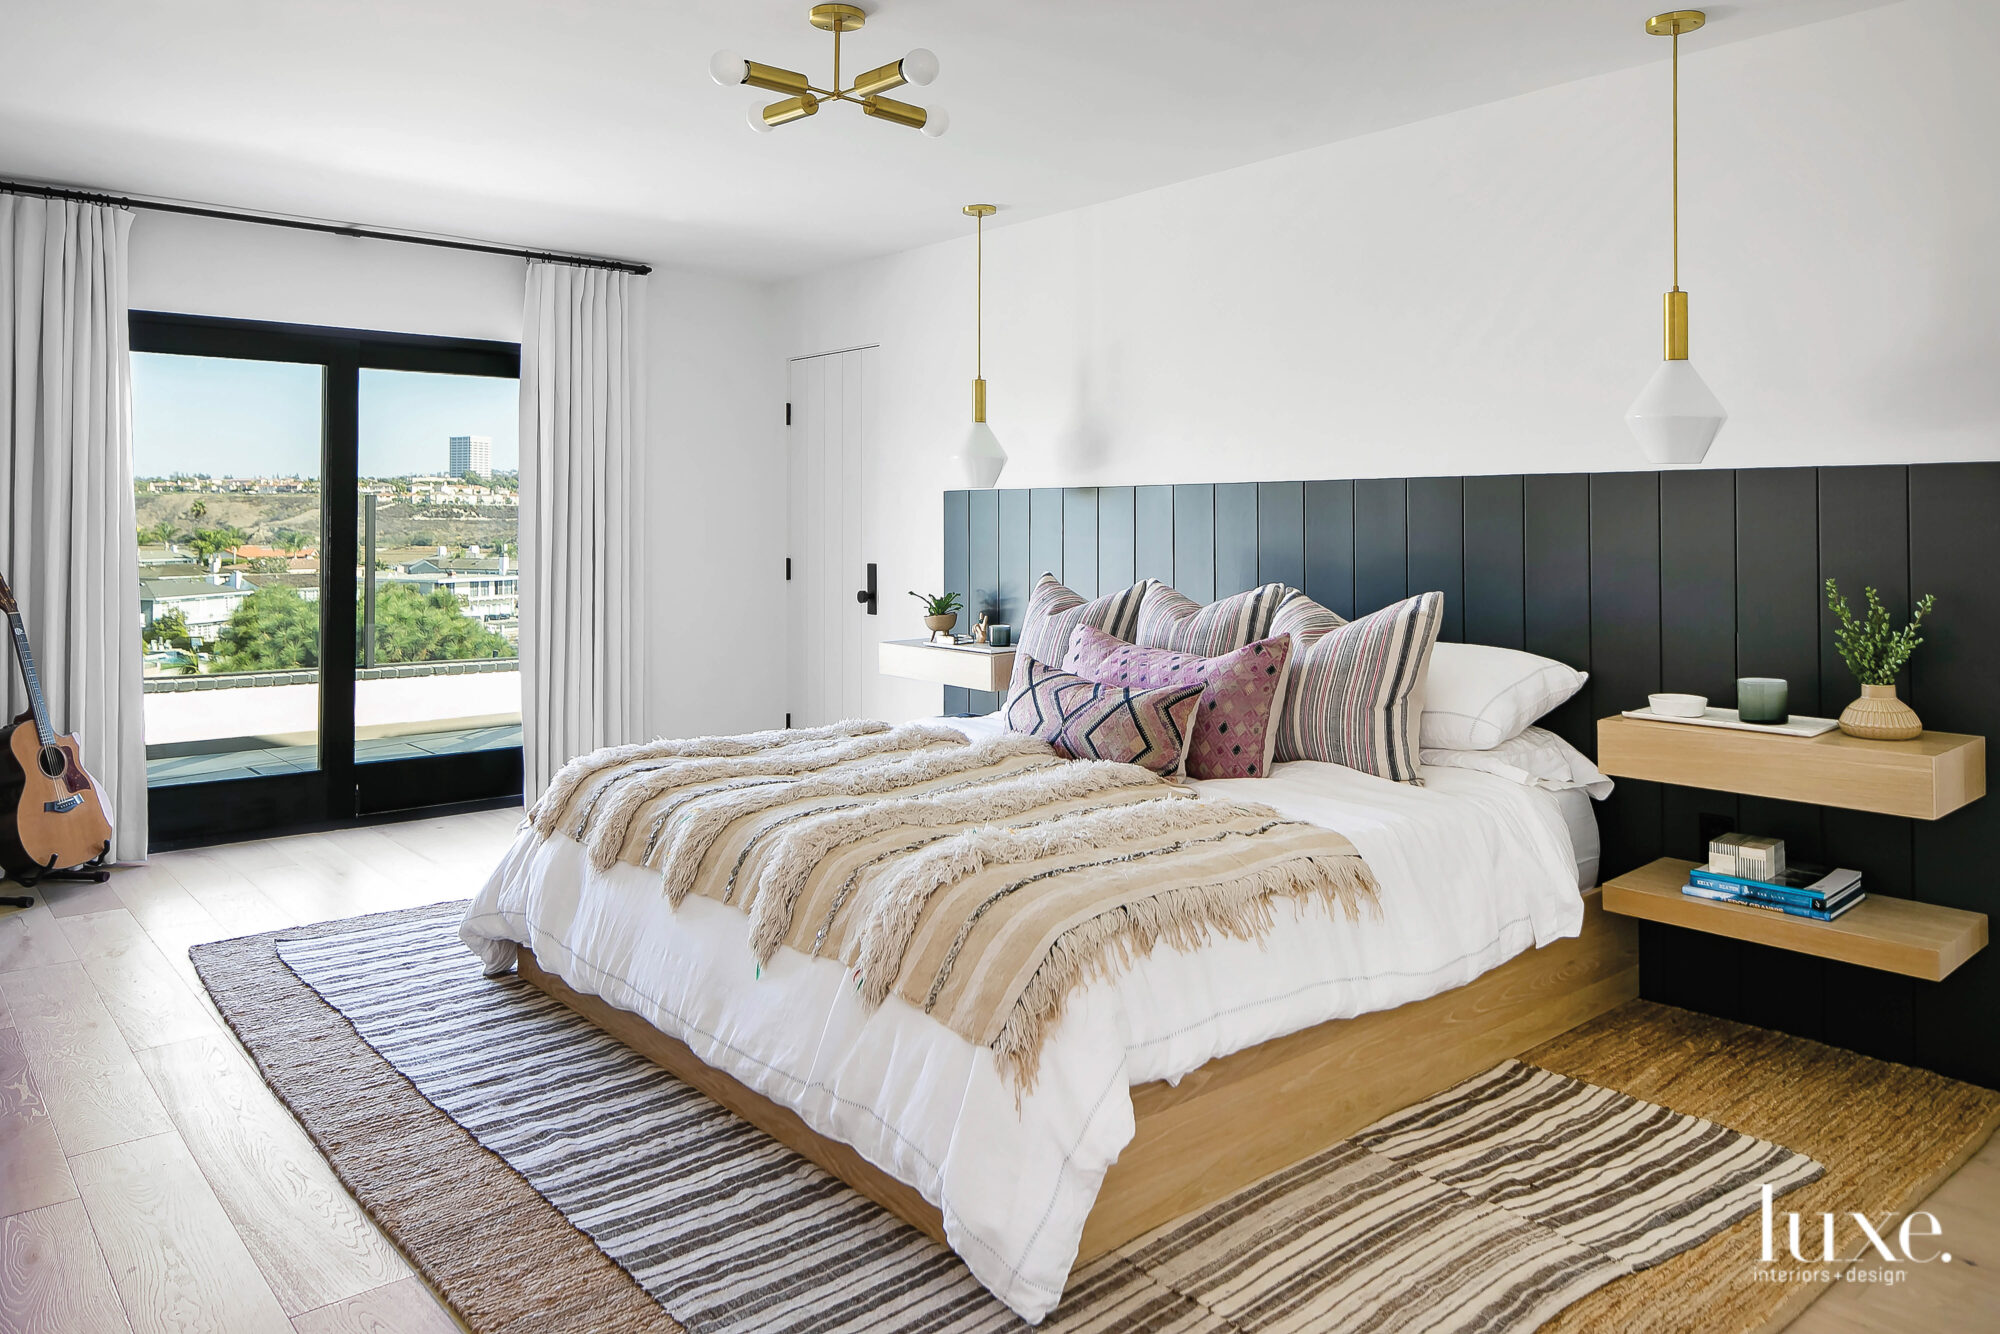 Master bedroom with statement headboard